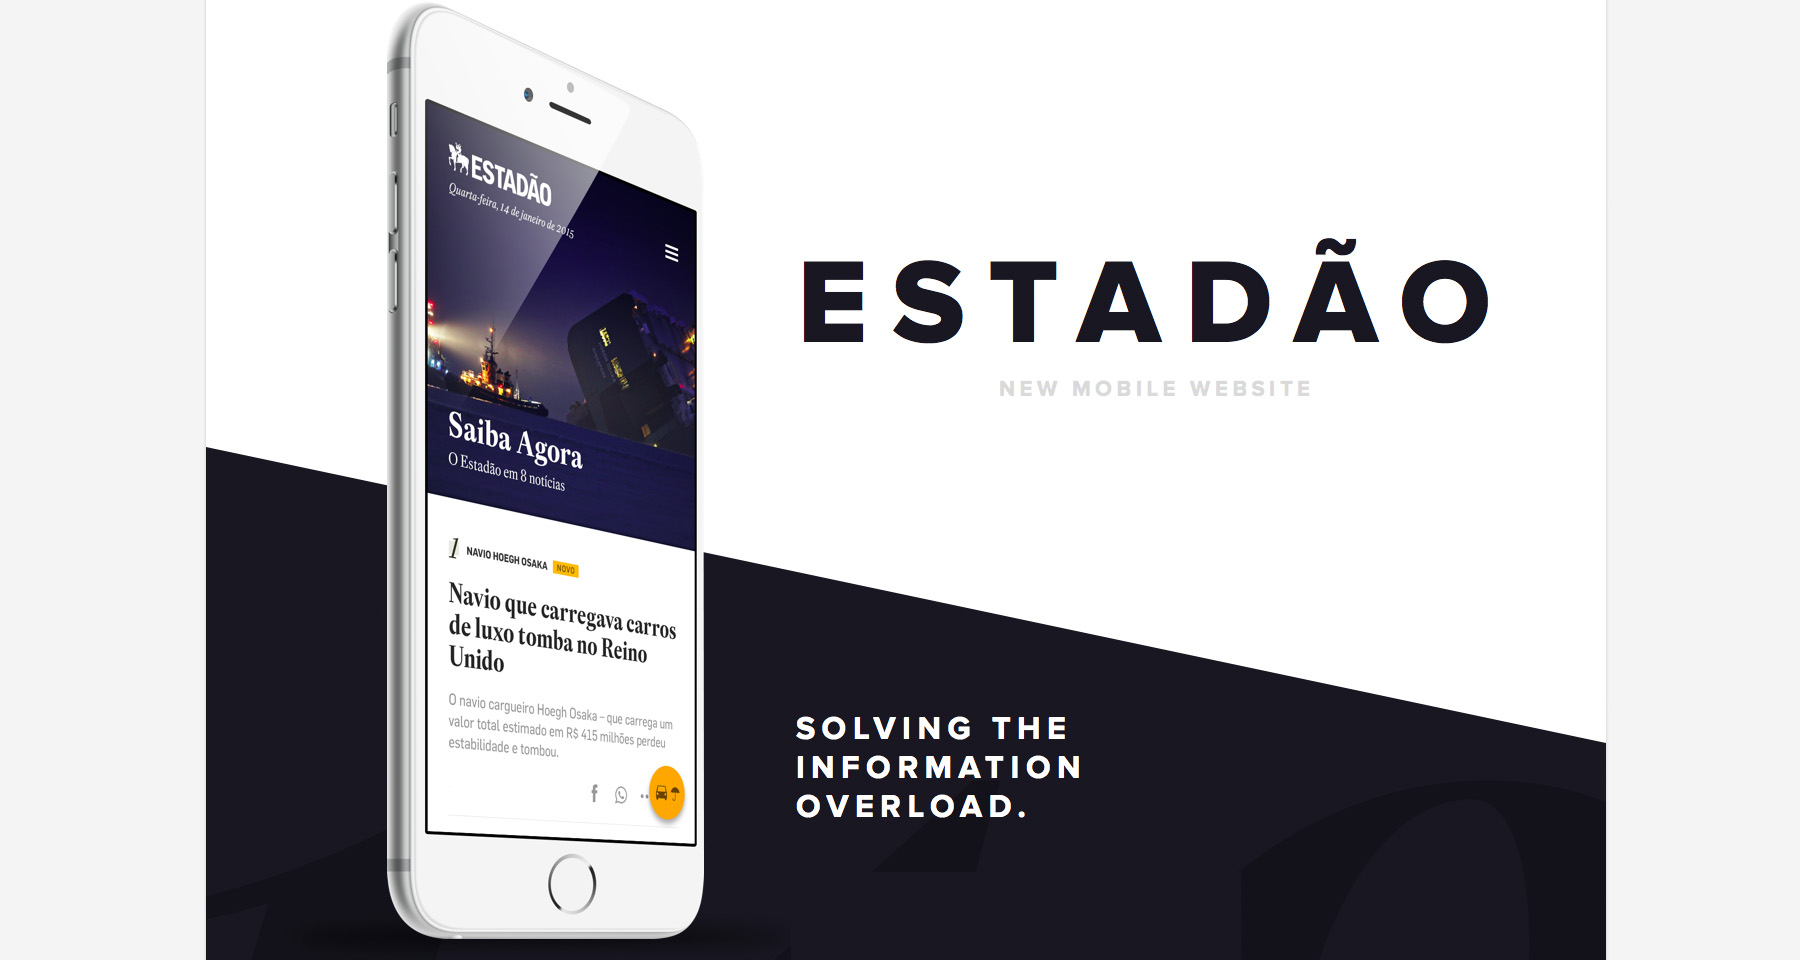 Estadão engages more mobile readers with geolocation, personalisation features